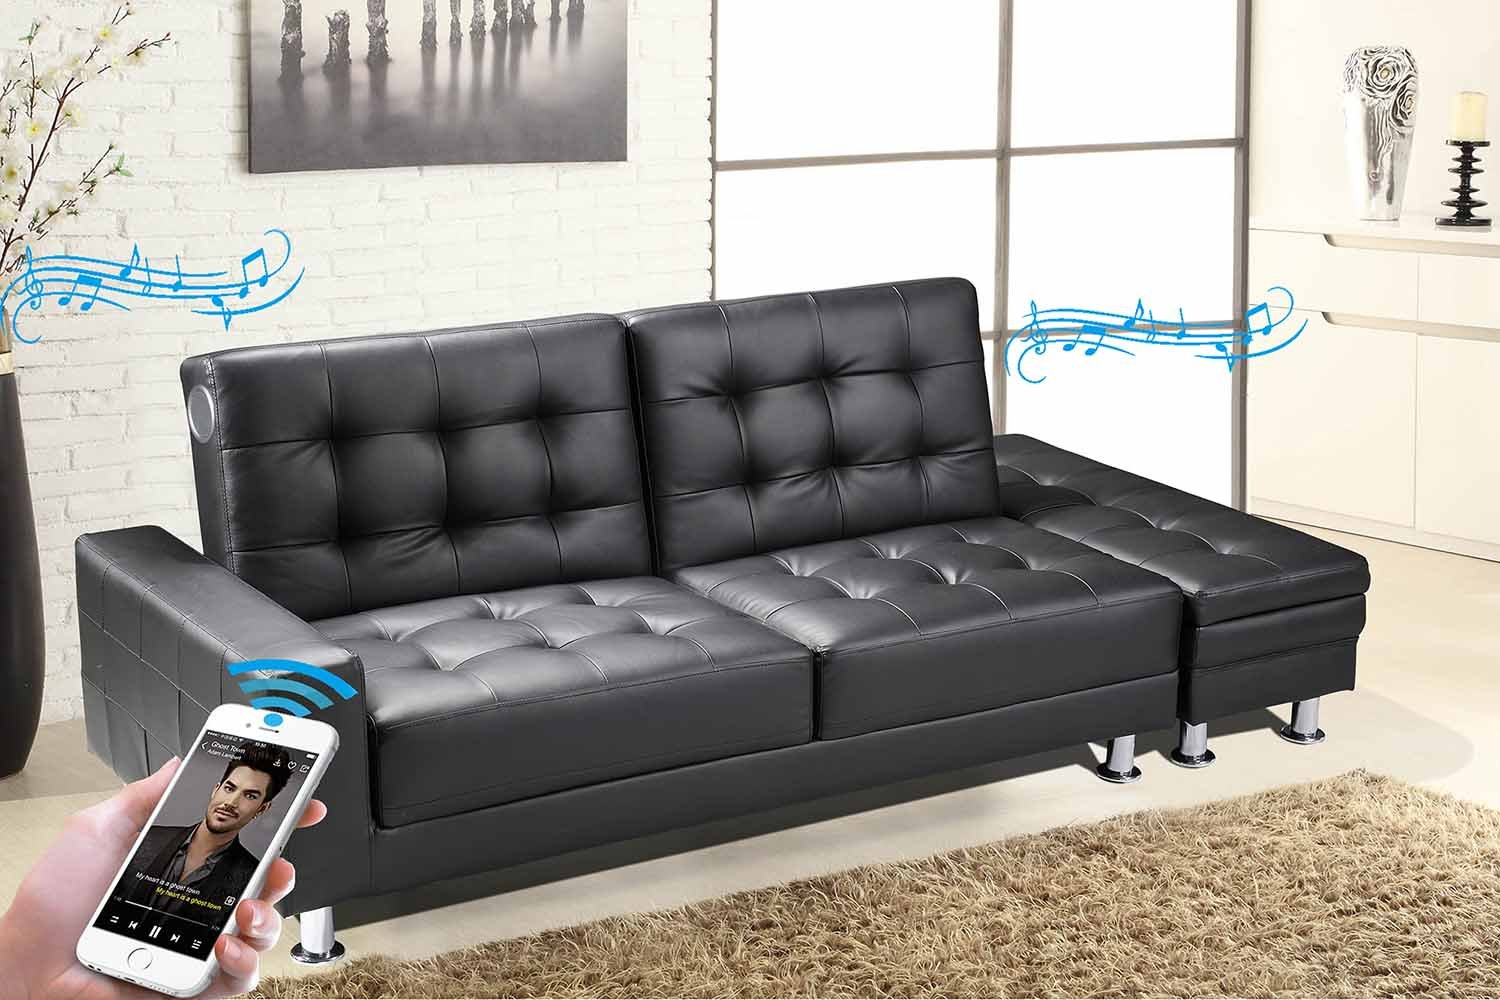 New Contemporary Modern Knightsbridge Faux Leather Storage Ottoman Fold Down Sofa Bed In Black With Built In Bluetooth Stereo Speakers (Black) ... & New Contemporary Modern Knightsbridge Faux Leather Storage Ottoman ...